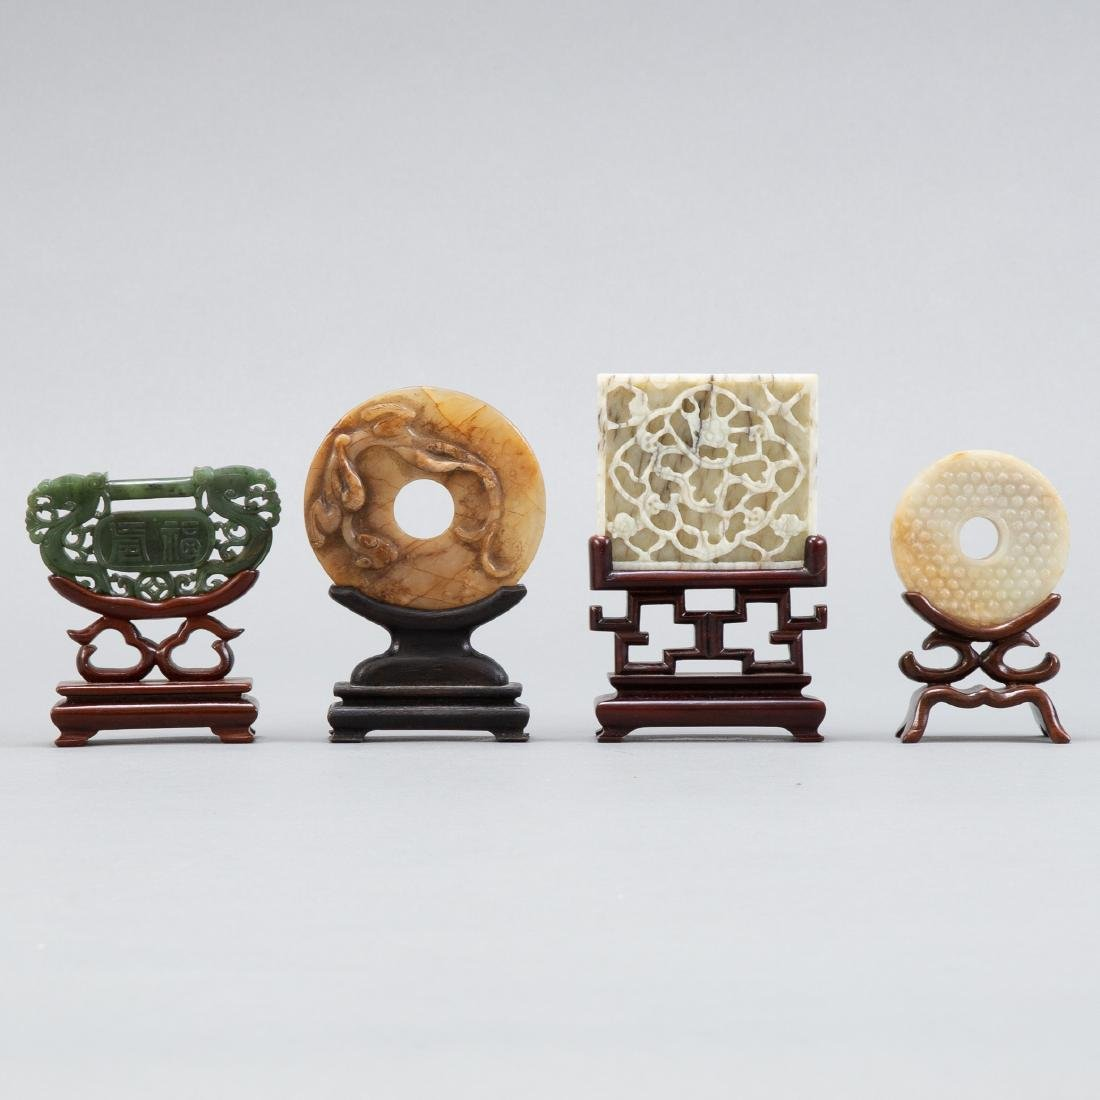 Group of 4 Chinese Jade Carvings on stands